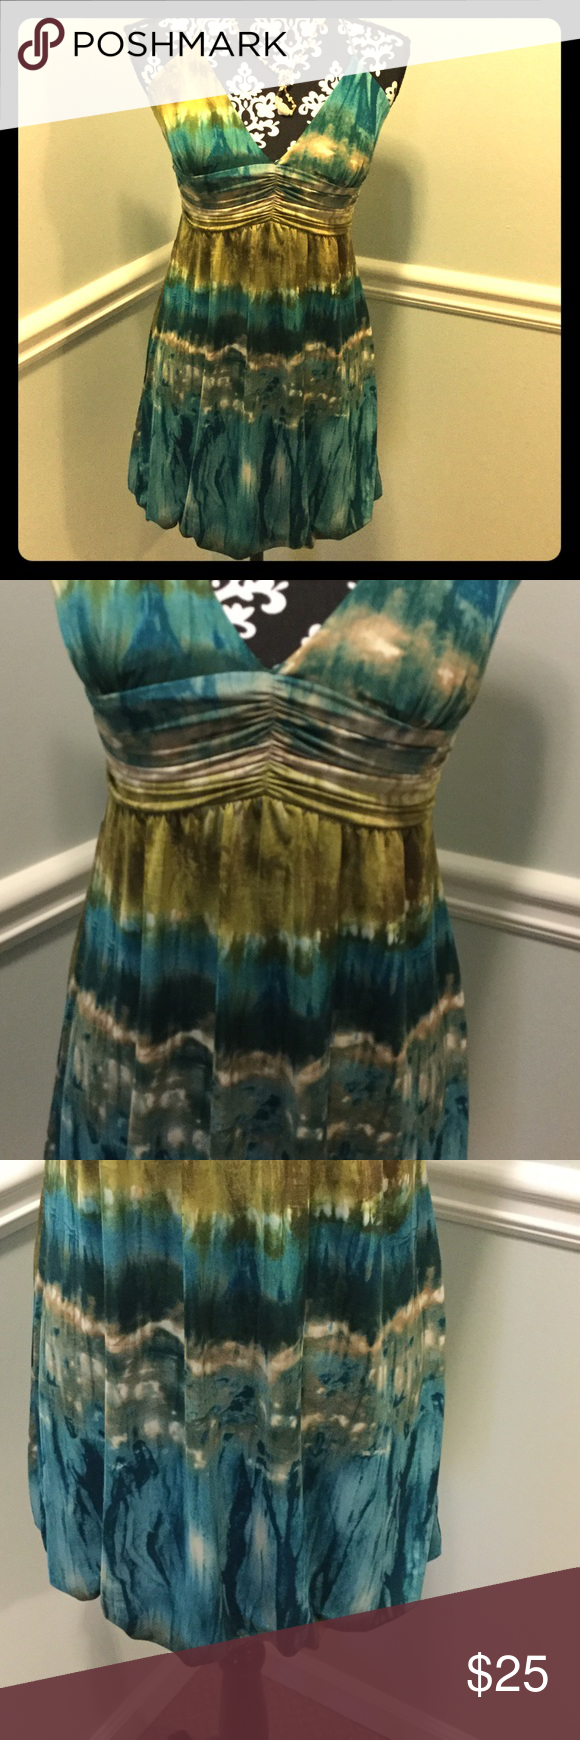 Watercolor sundress! Fun watercolor look fabric in shades of teal and green. Halter tie neck and balloon hem. Flattering gathered bodice. No zipper. Sweet dress! Trixxi Dresses Mini